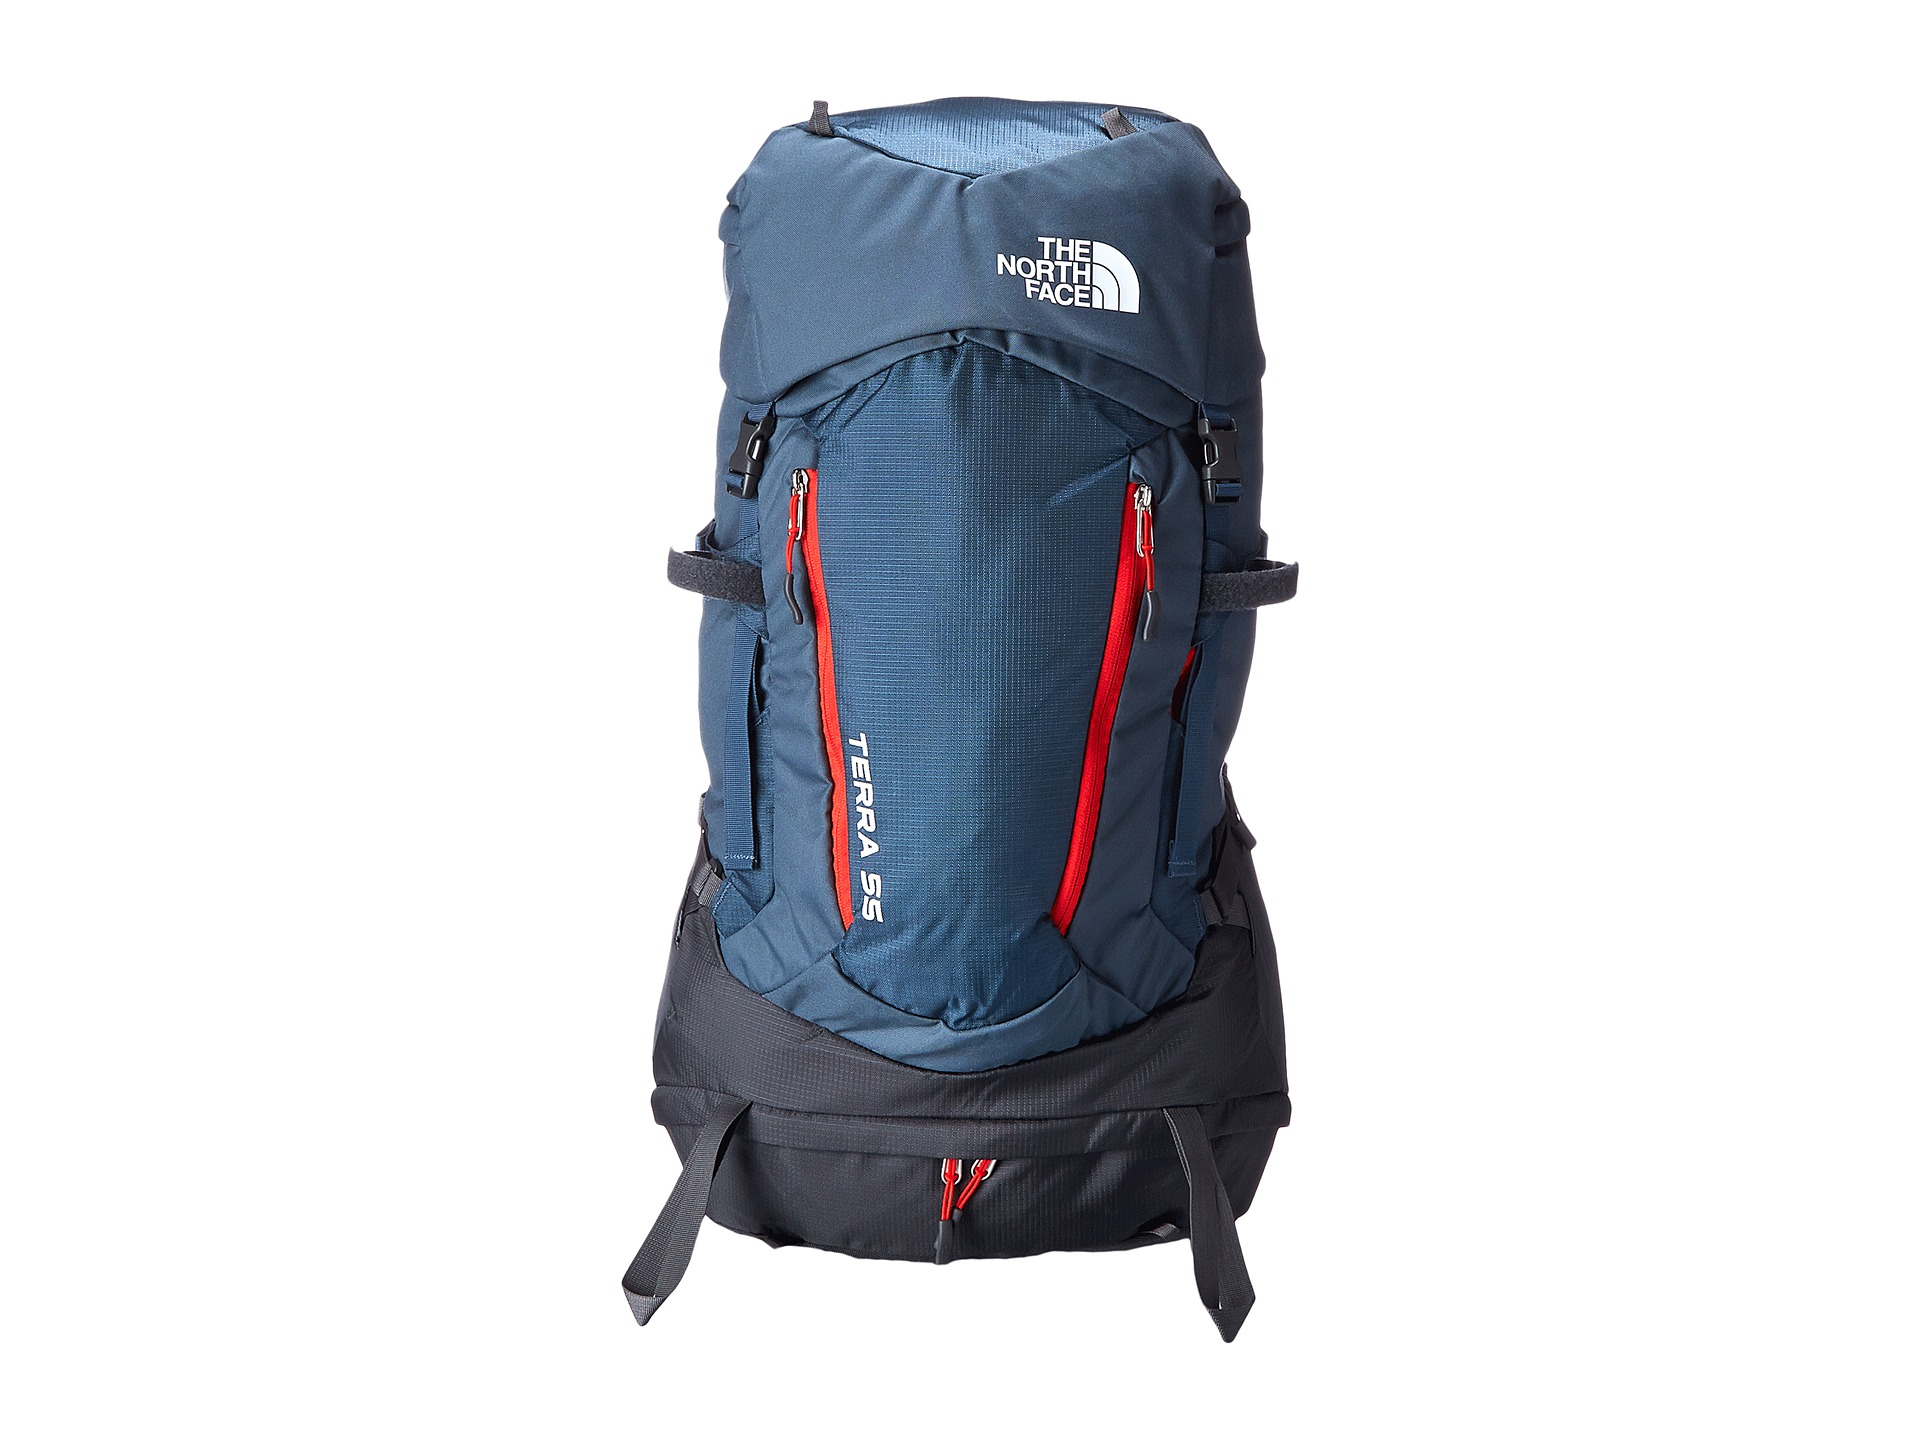 The North Face Terra 55 (Youth) - Zappos.com Free Shipping BOTH Ways